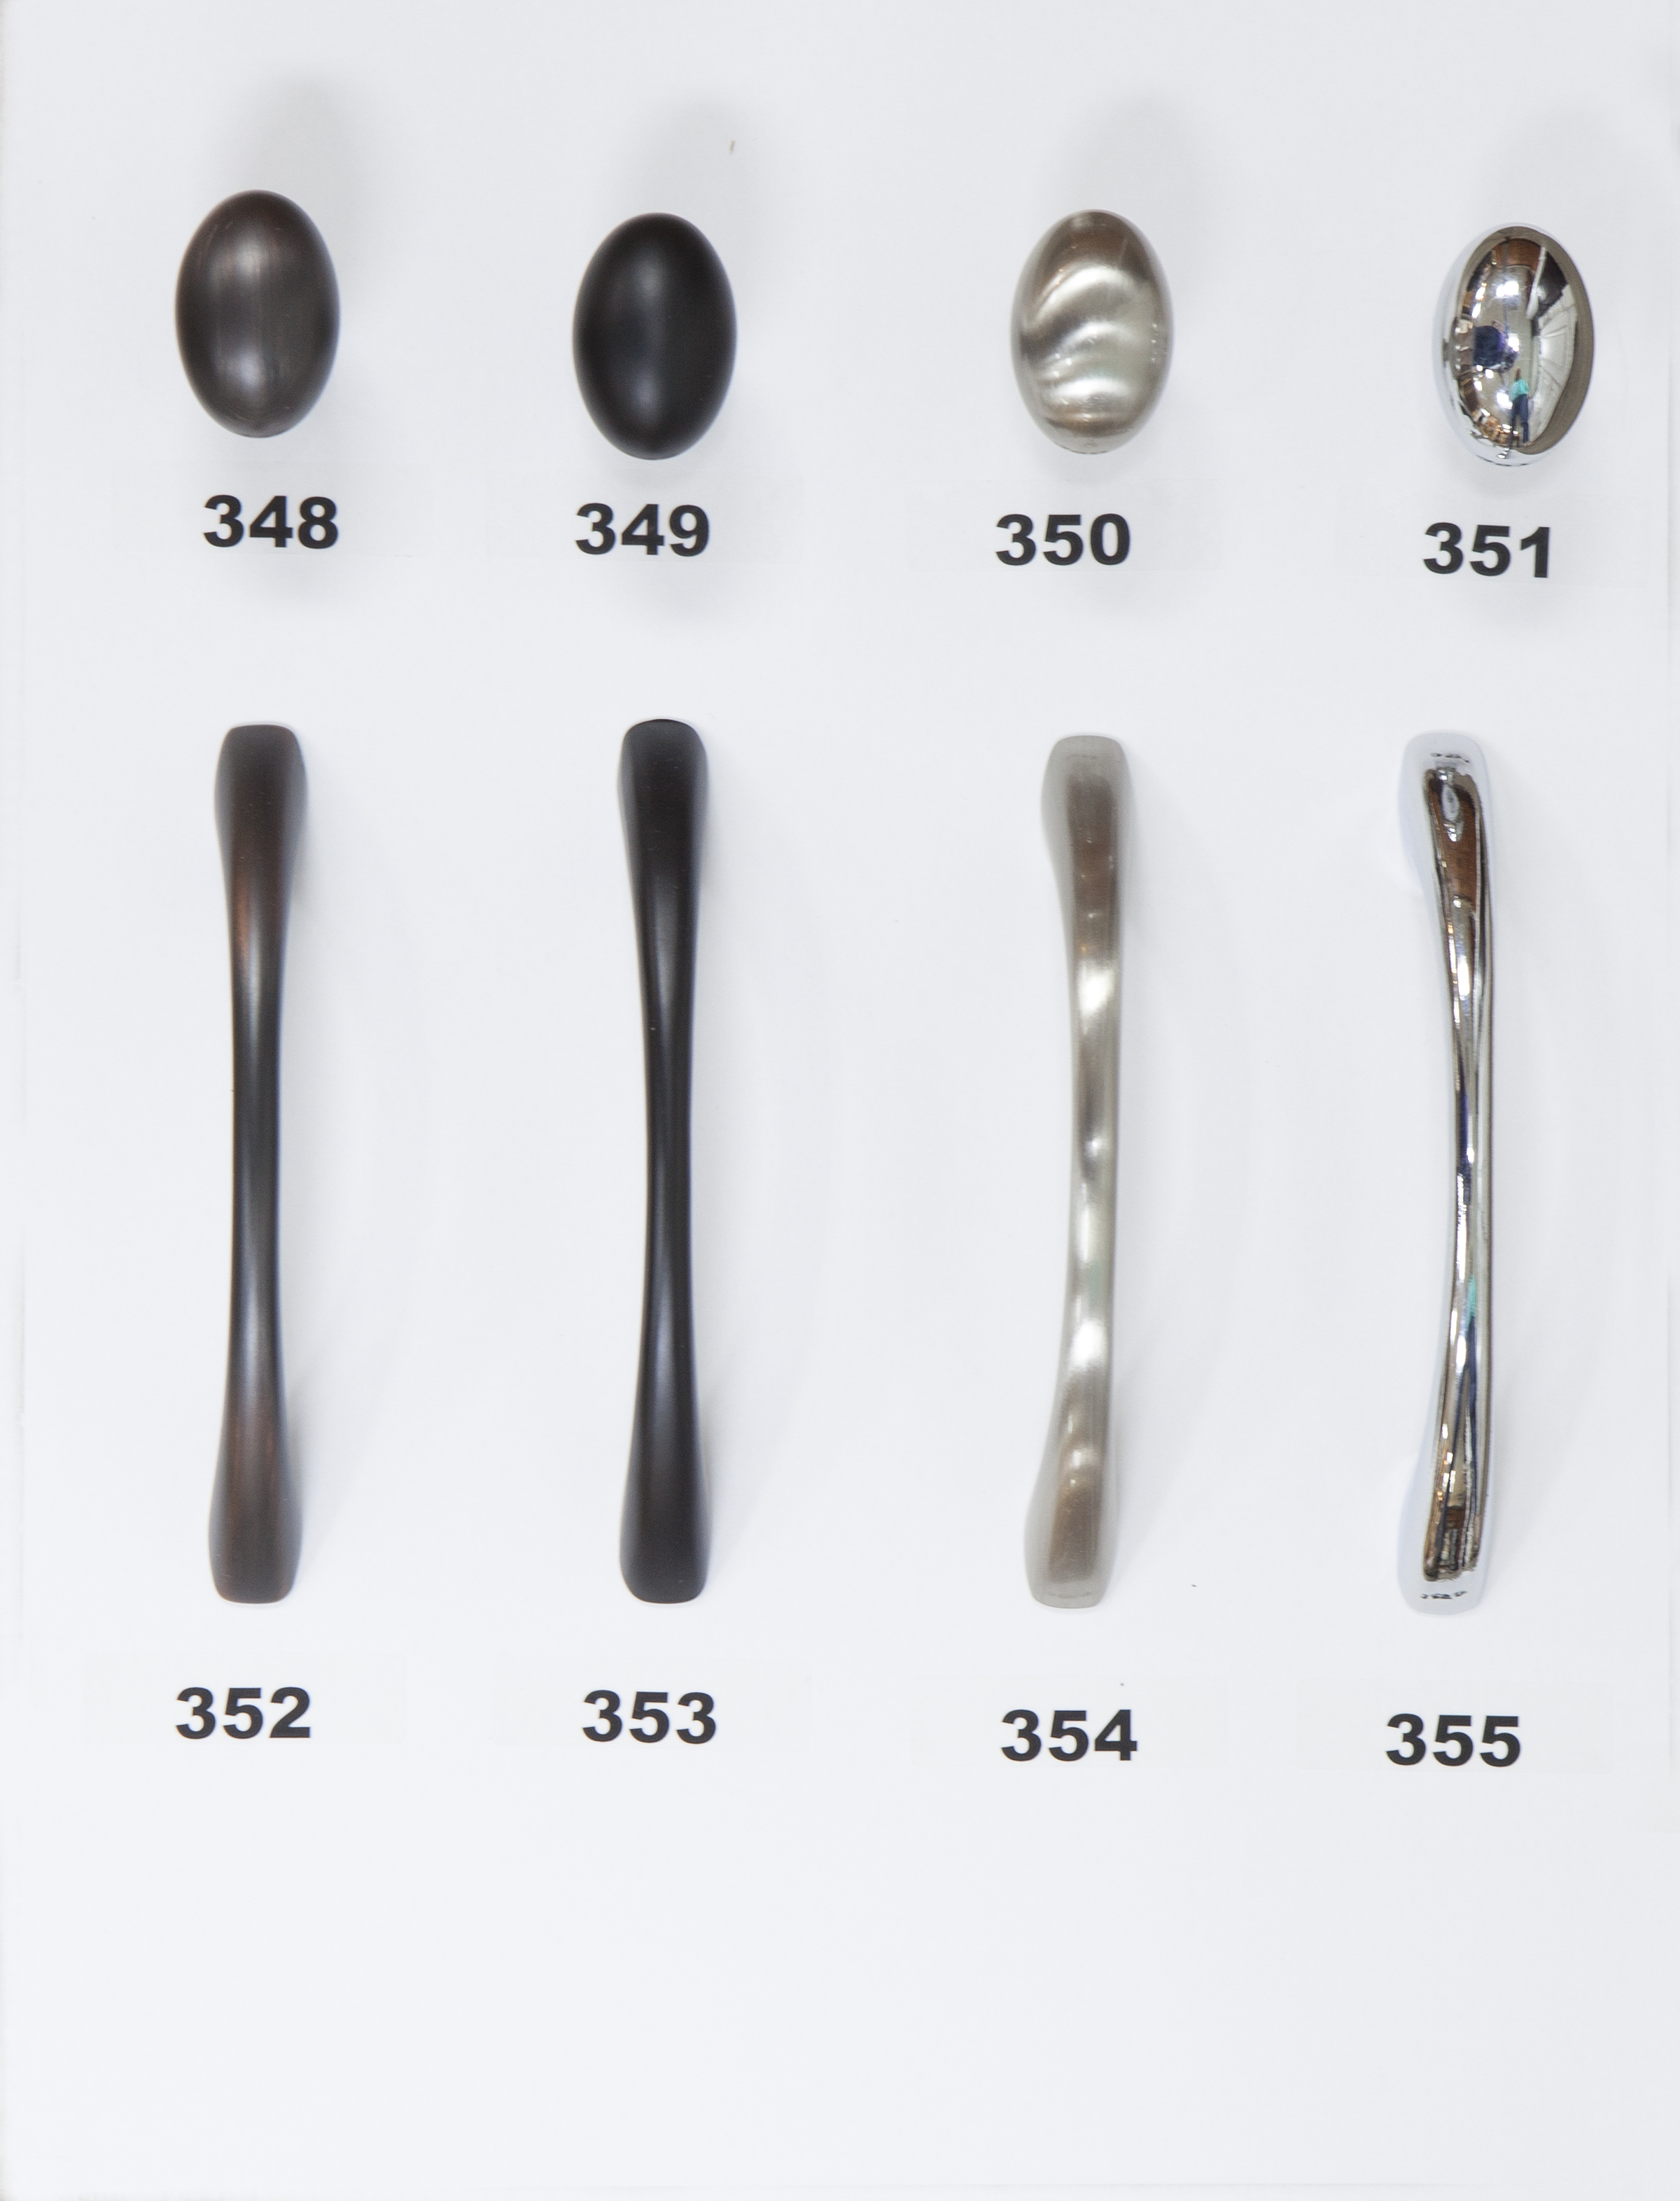 "#348 - Knob - Oil Rubbed Bronze  #349 - Knob - Flat Black  #350 - Knob - Satin Nickel  #351 - Knob - Polished Chrome  #352 - 3 3/4"" Center - Oil Rubbed Bronze   #353 - 3 3/4"" Center - Flat Black  #354 - 3 3/4"" Center - Satin Nickel  #355 - 3 3/4"" Center - Polished Chrome"